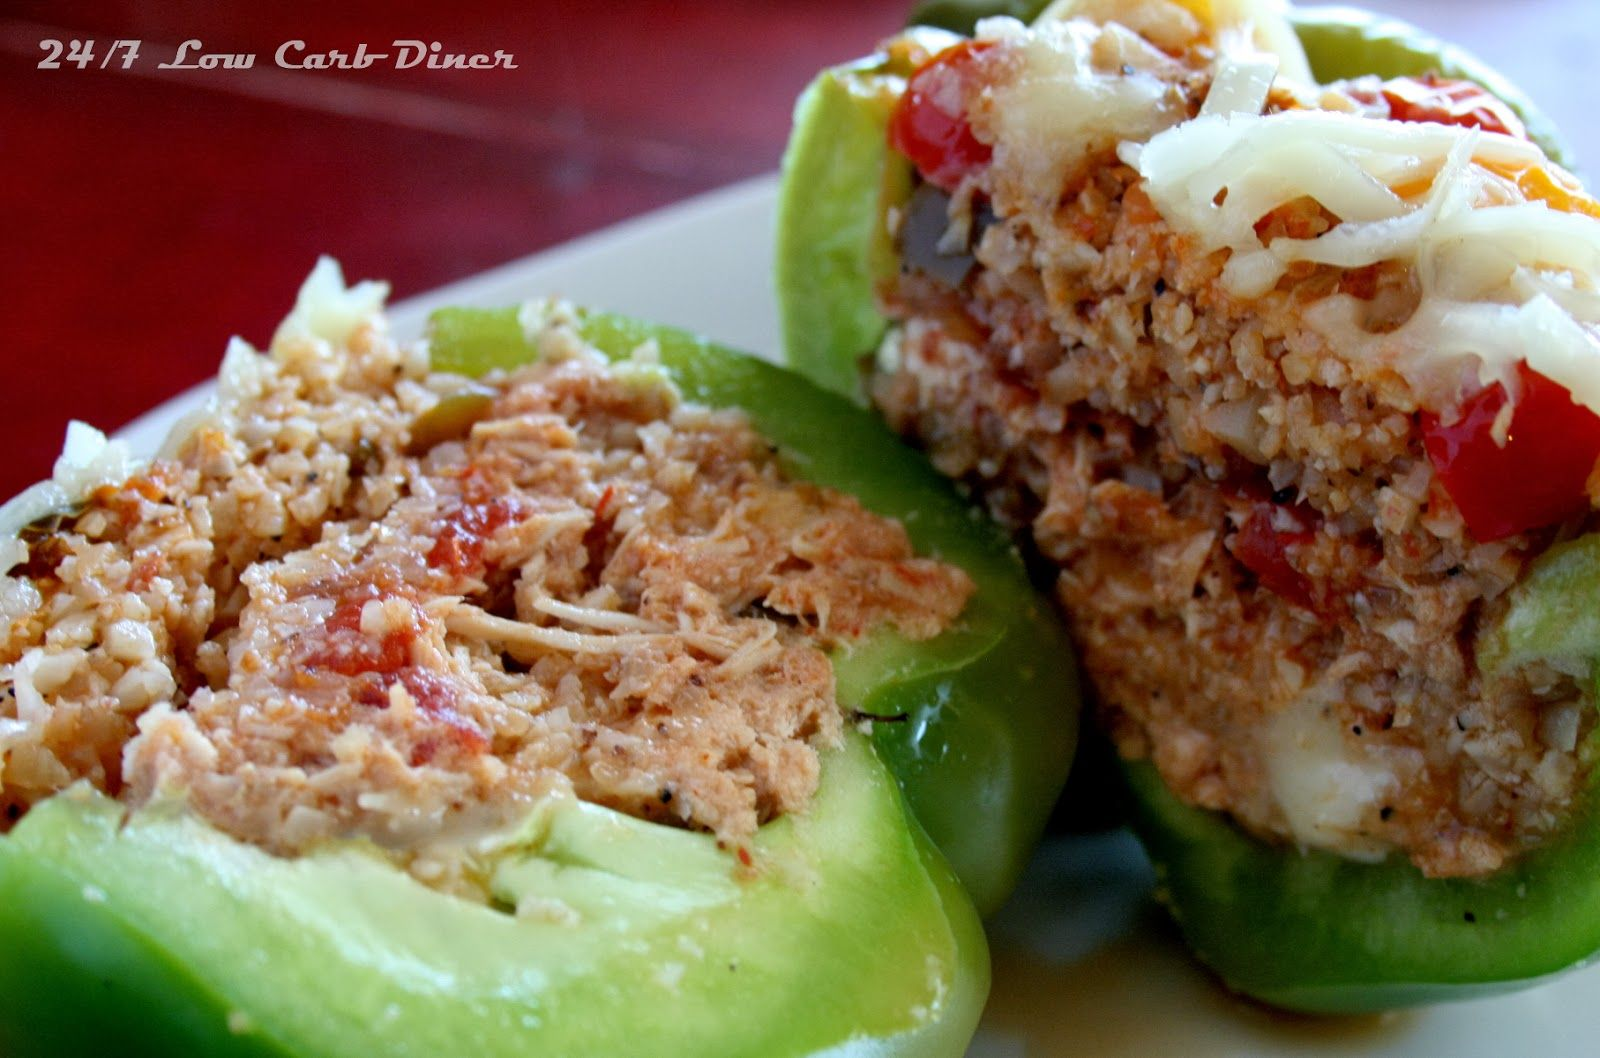 24/7 Low Carb Diner: Peppers Monterey - Keto / low carb